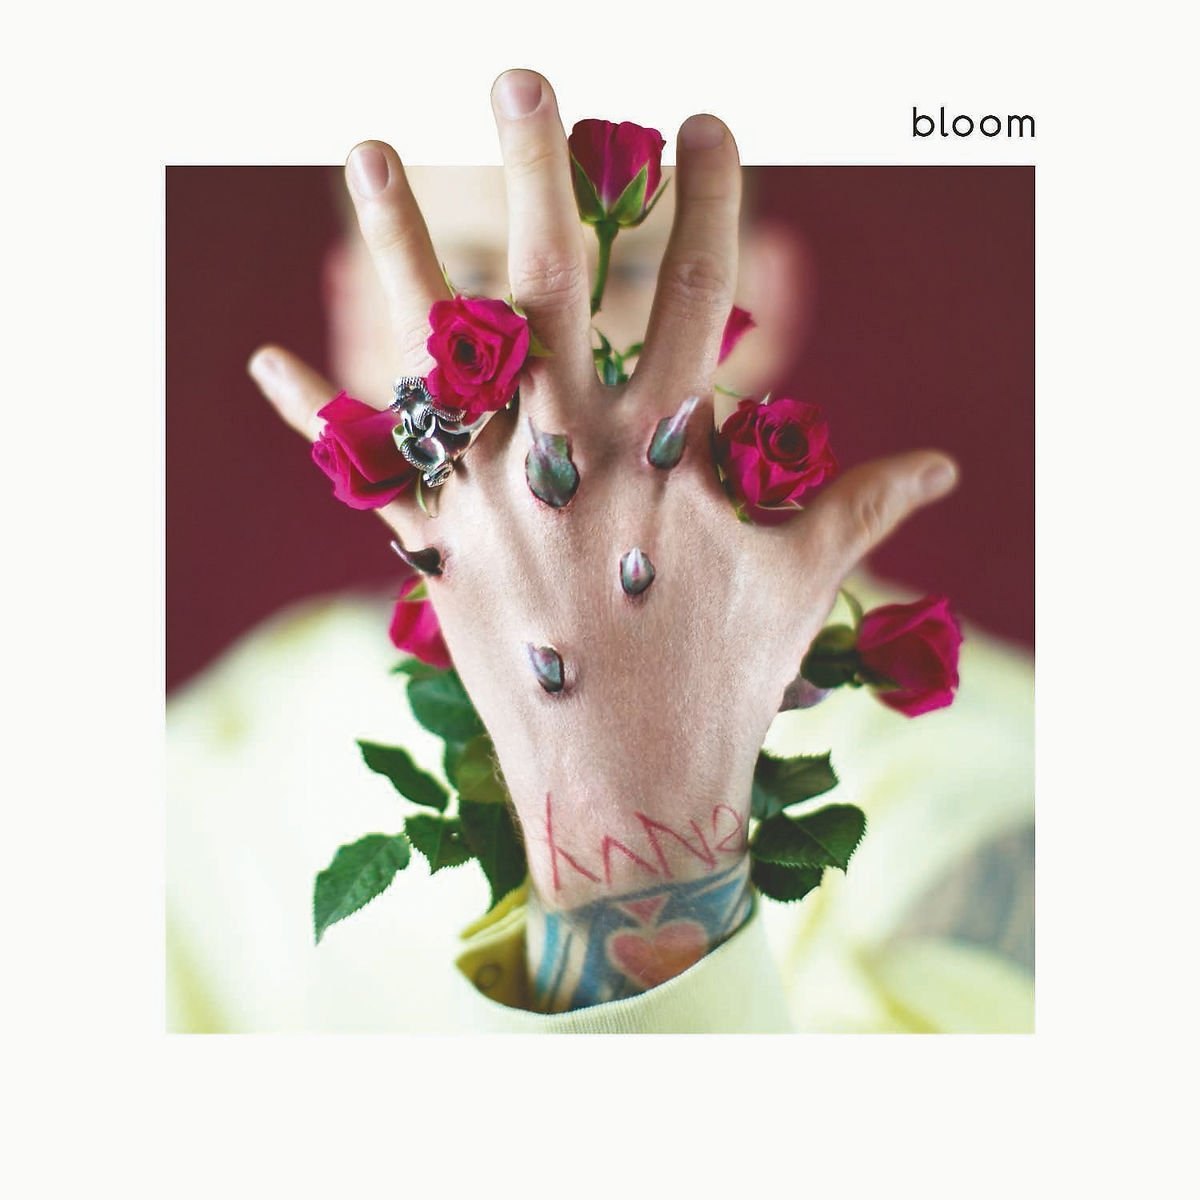 CD : Machine Gun Kelly - Bloom [Explicit Content]